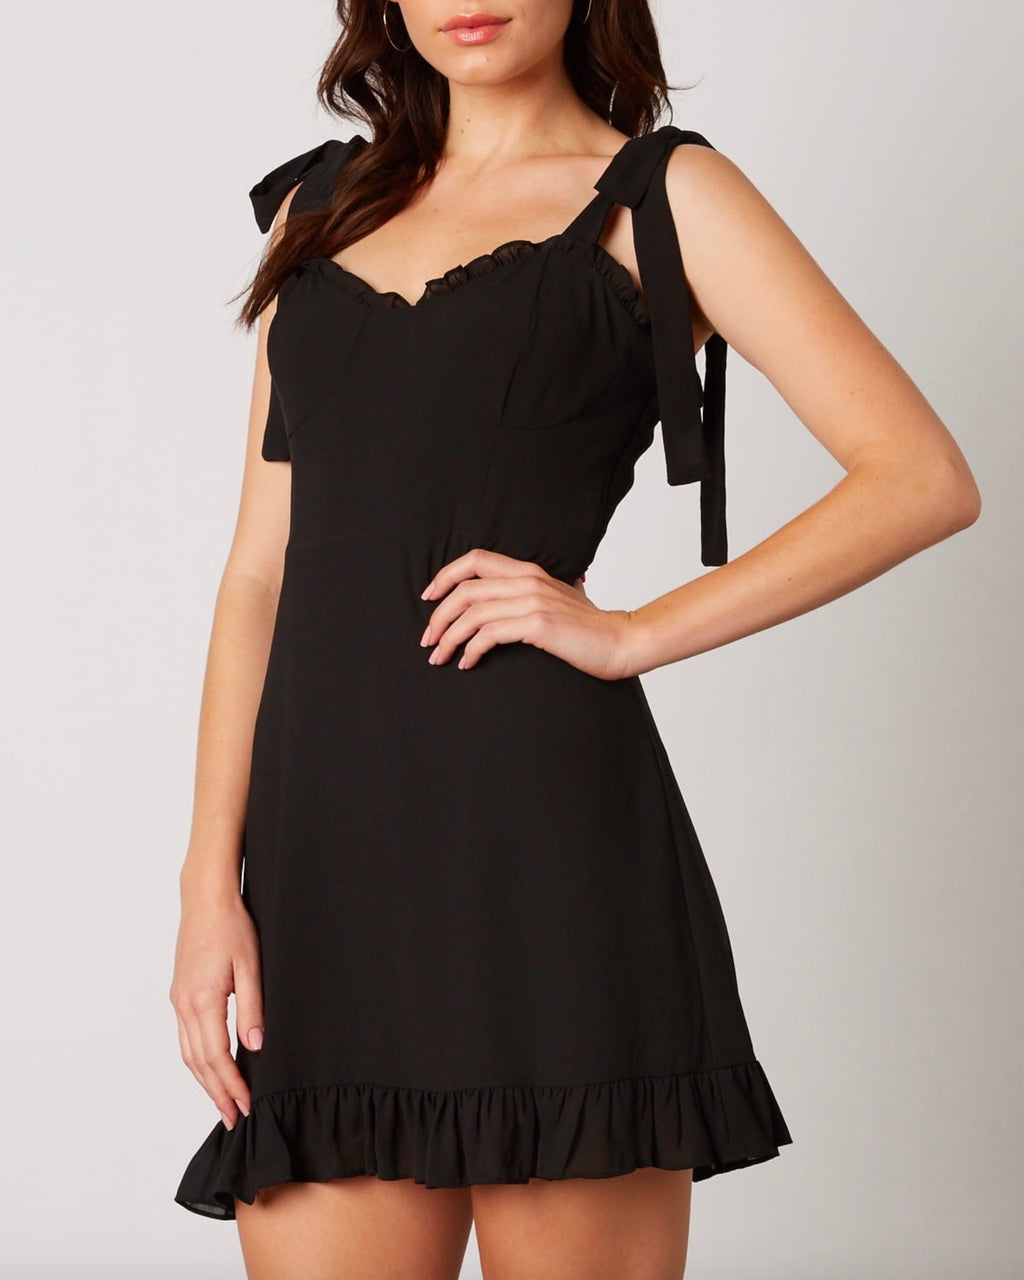 smocked chiffon bustier inspired dress with self-tie straps - black